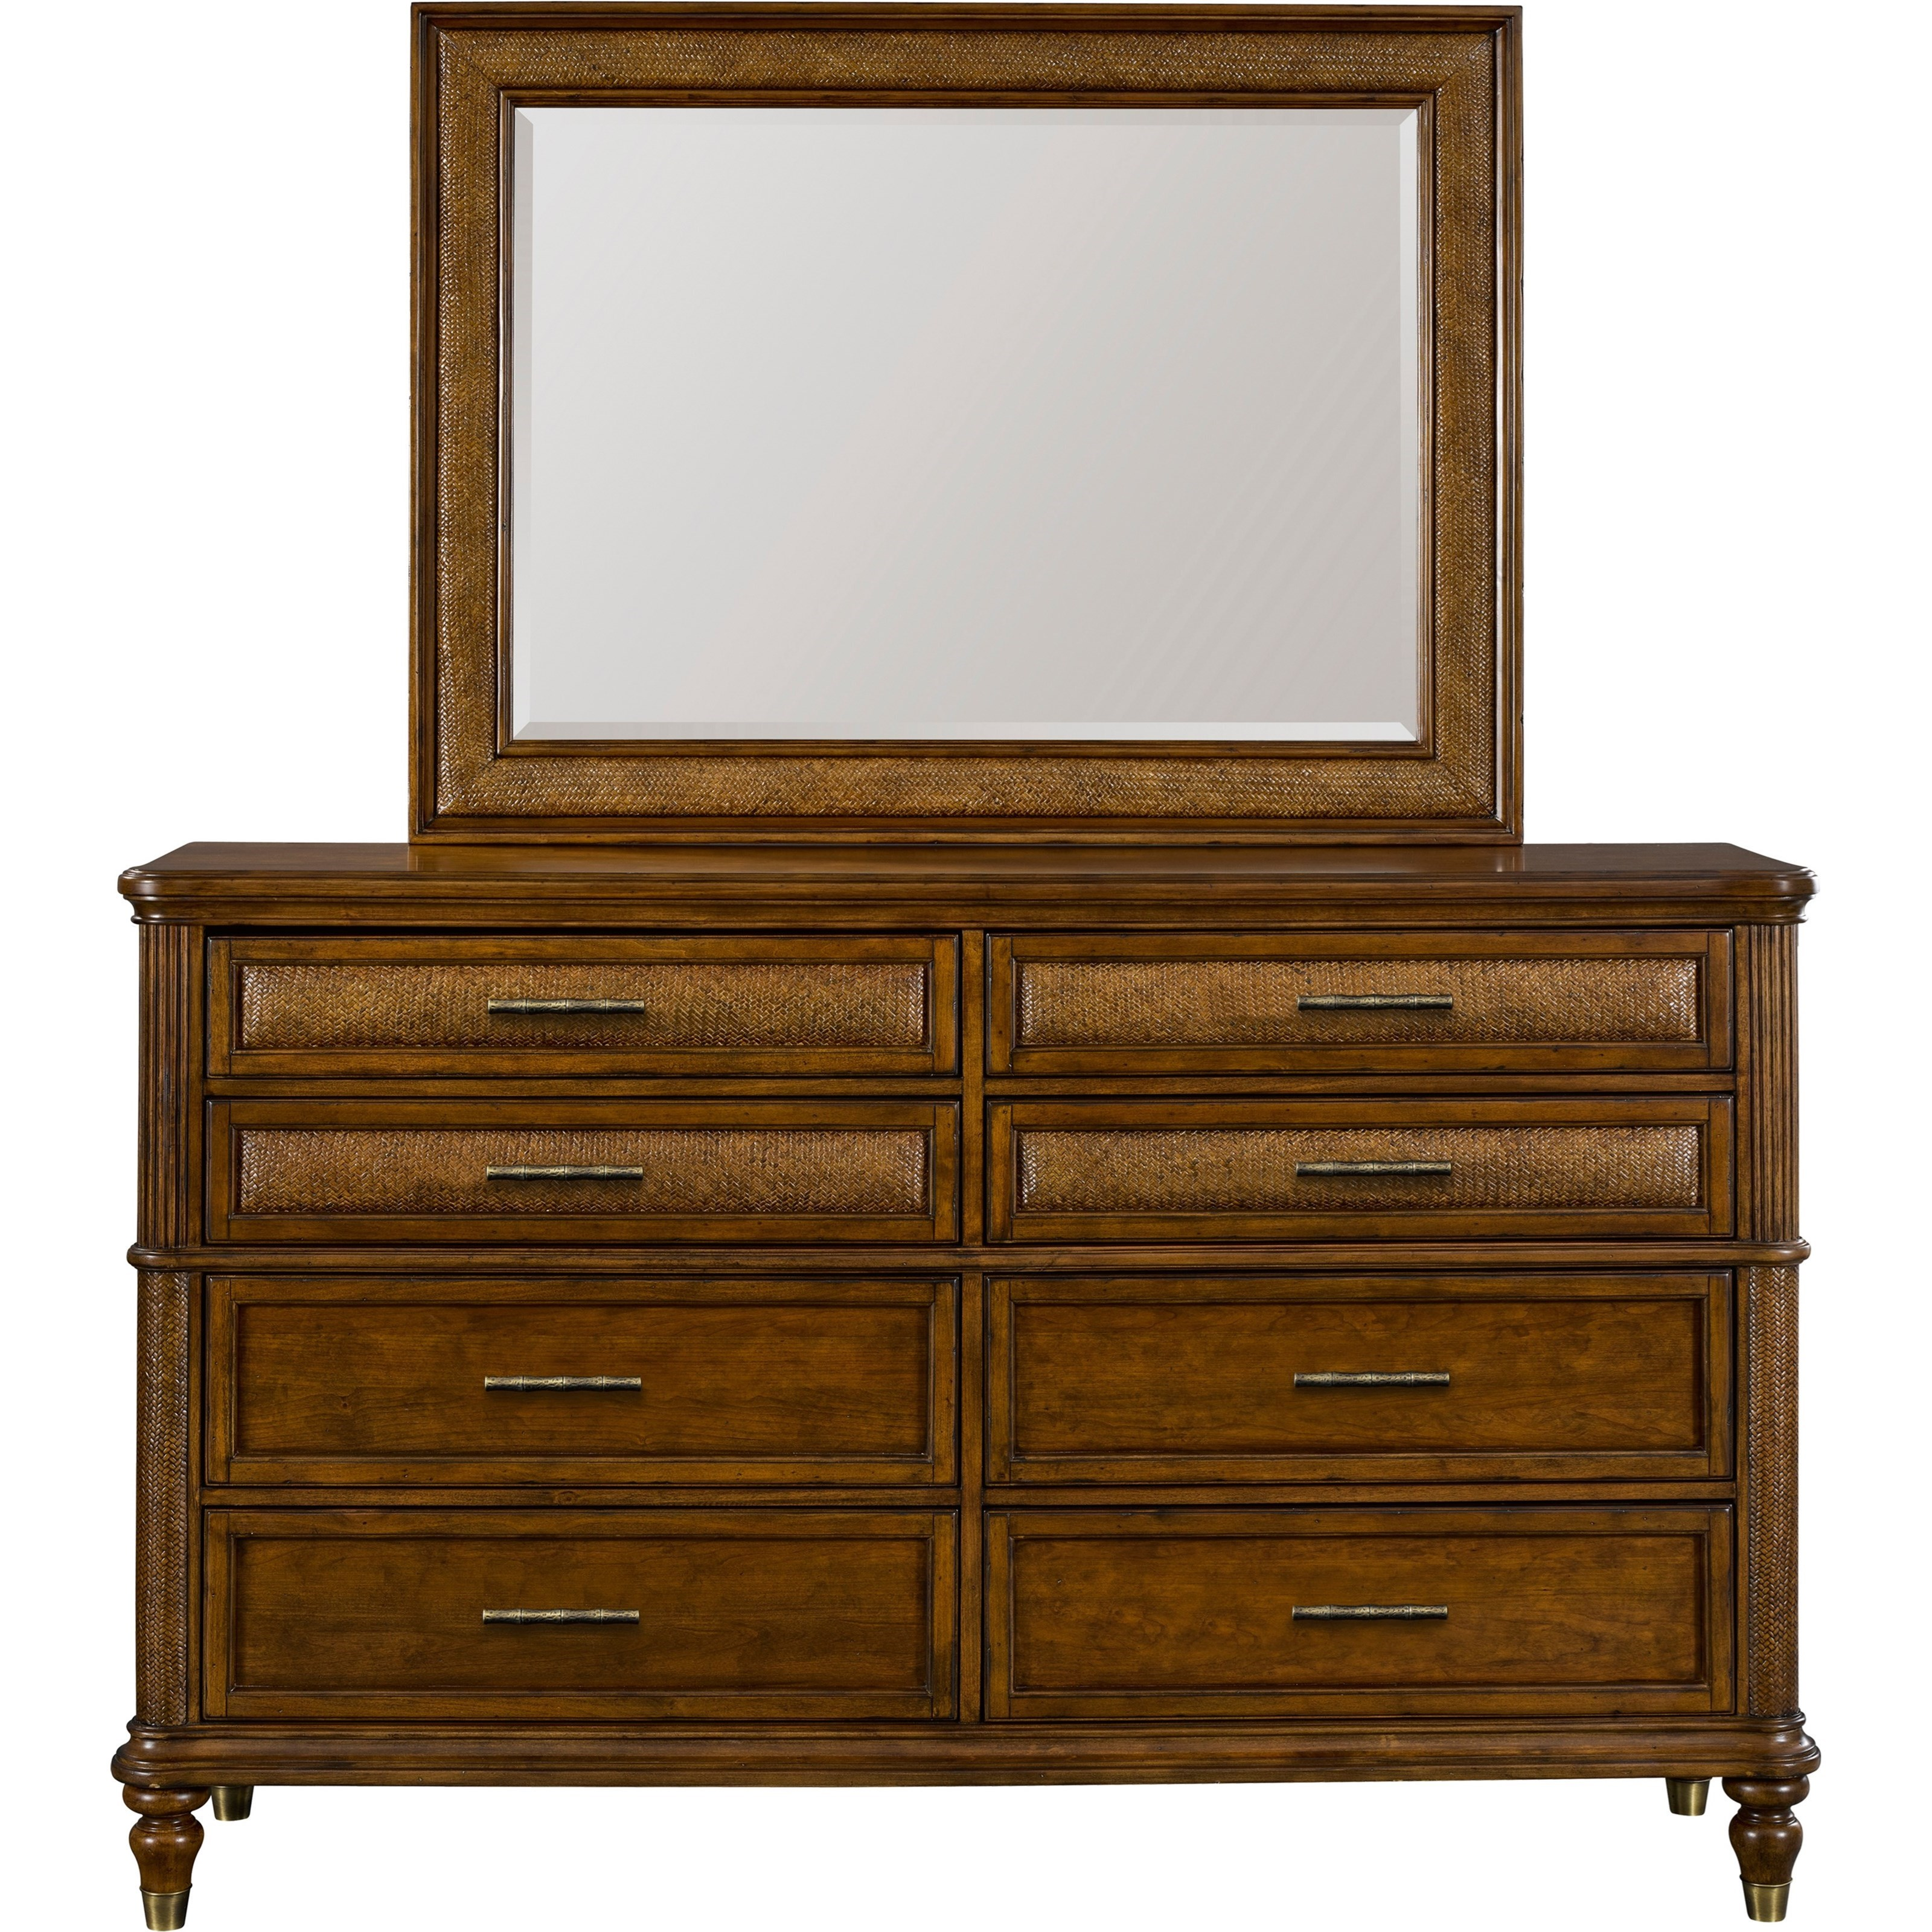 Broyhill Furniture Amalie Bay Dresser and Mirror Combo - Item Number: 4548-230+6